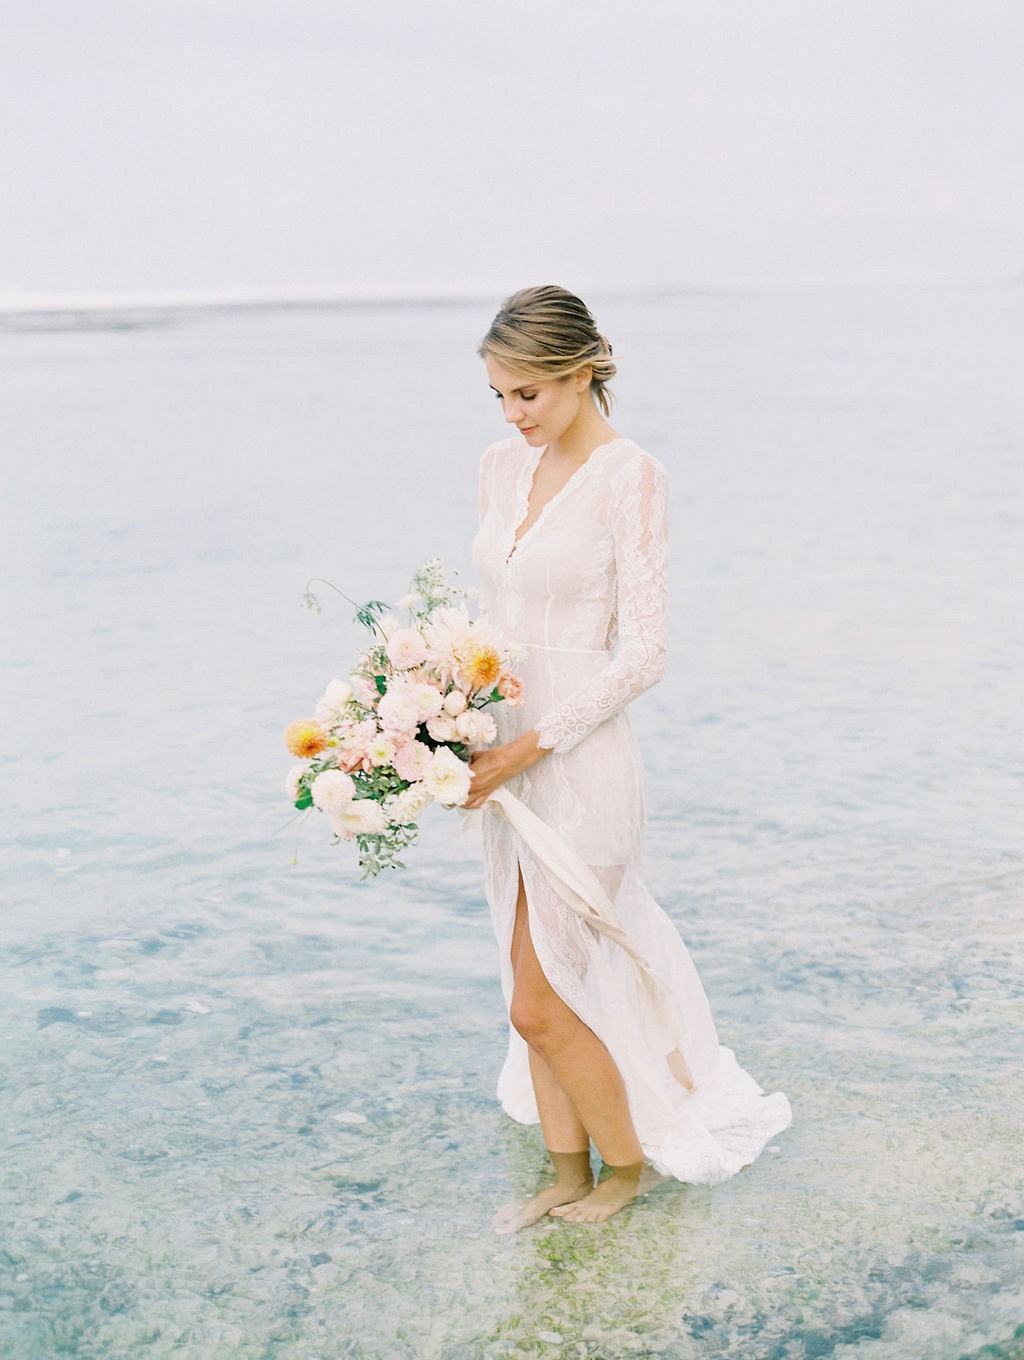 Bali wedding ideas with pops of citrus